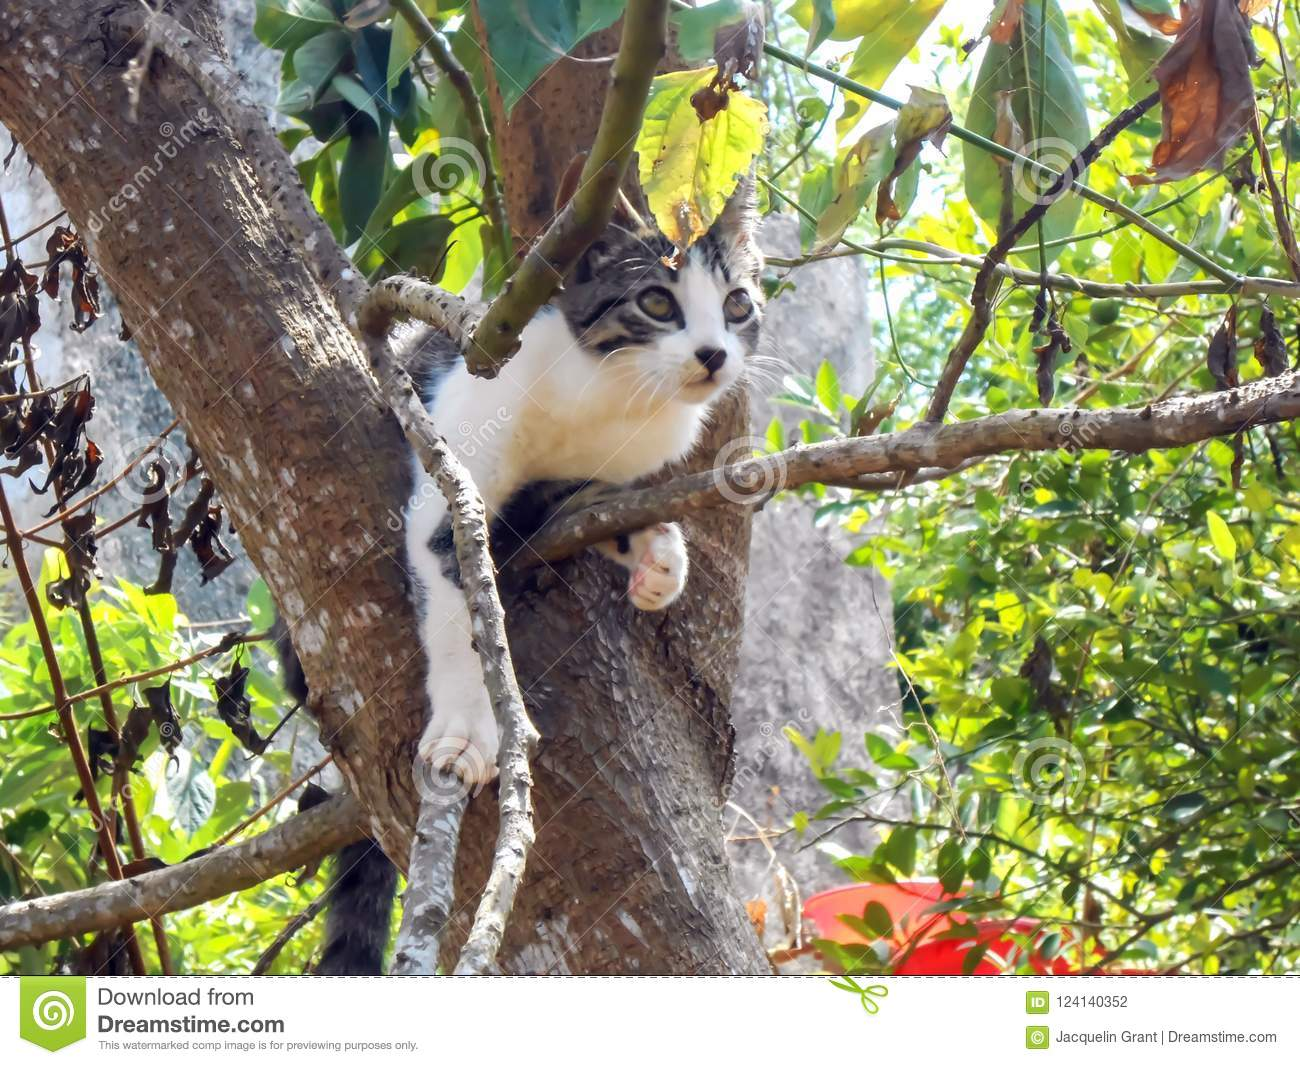 88fb21db00063 Curious, carefree domestic black, grey, and white cat in backyard,  climbing, positions itself in an avocado tree where the trunk splits in two  major boughs.